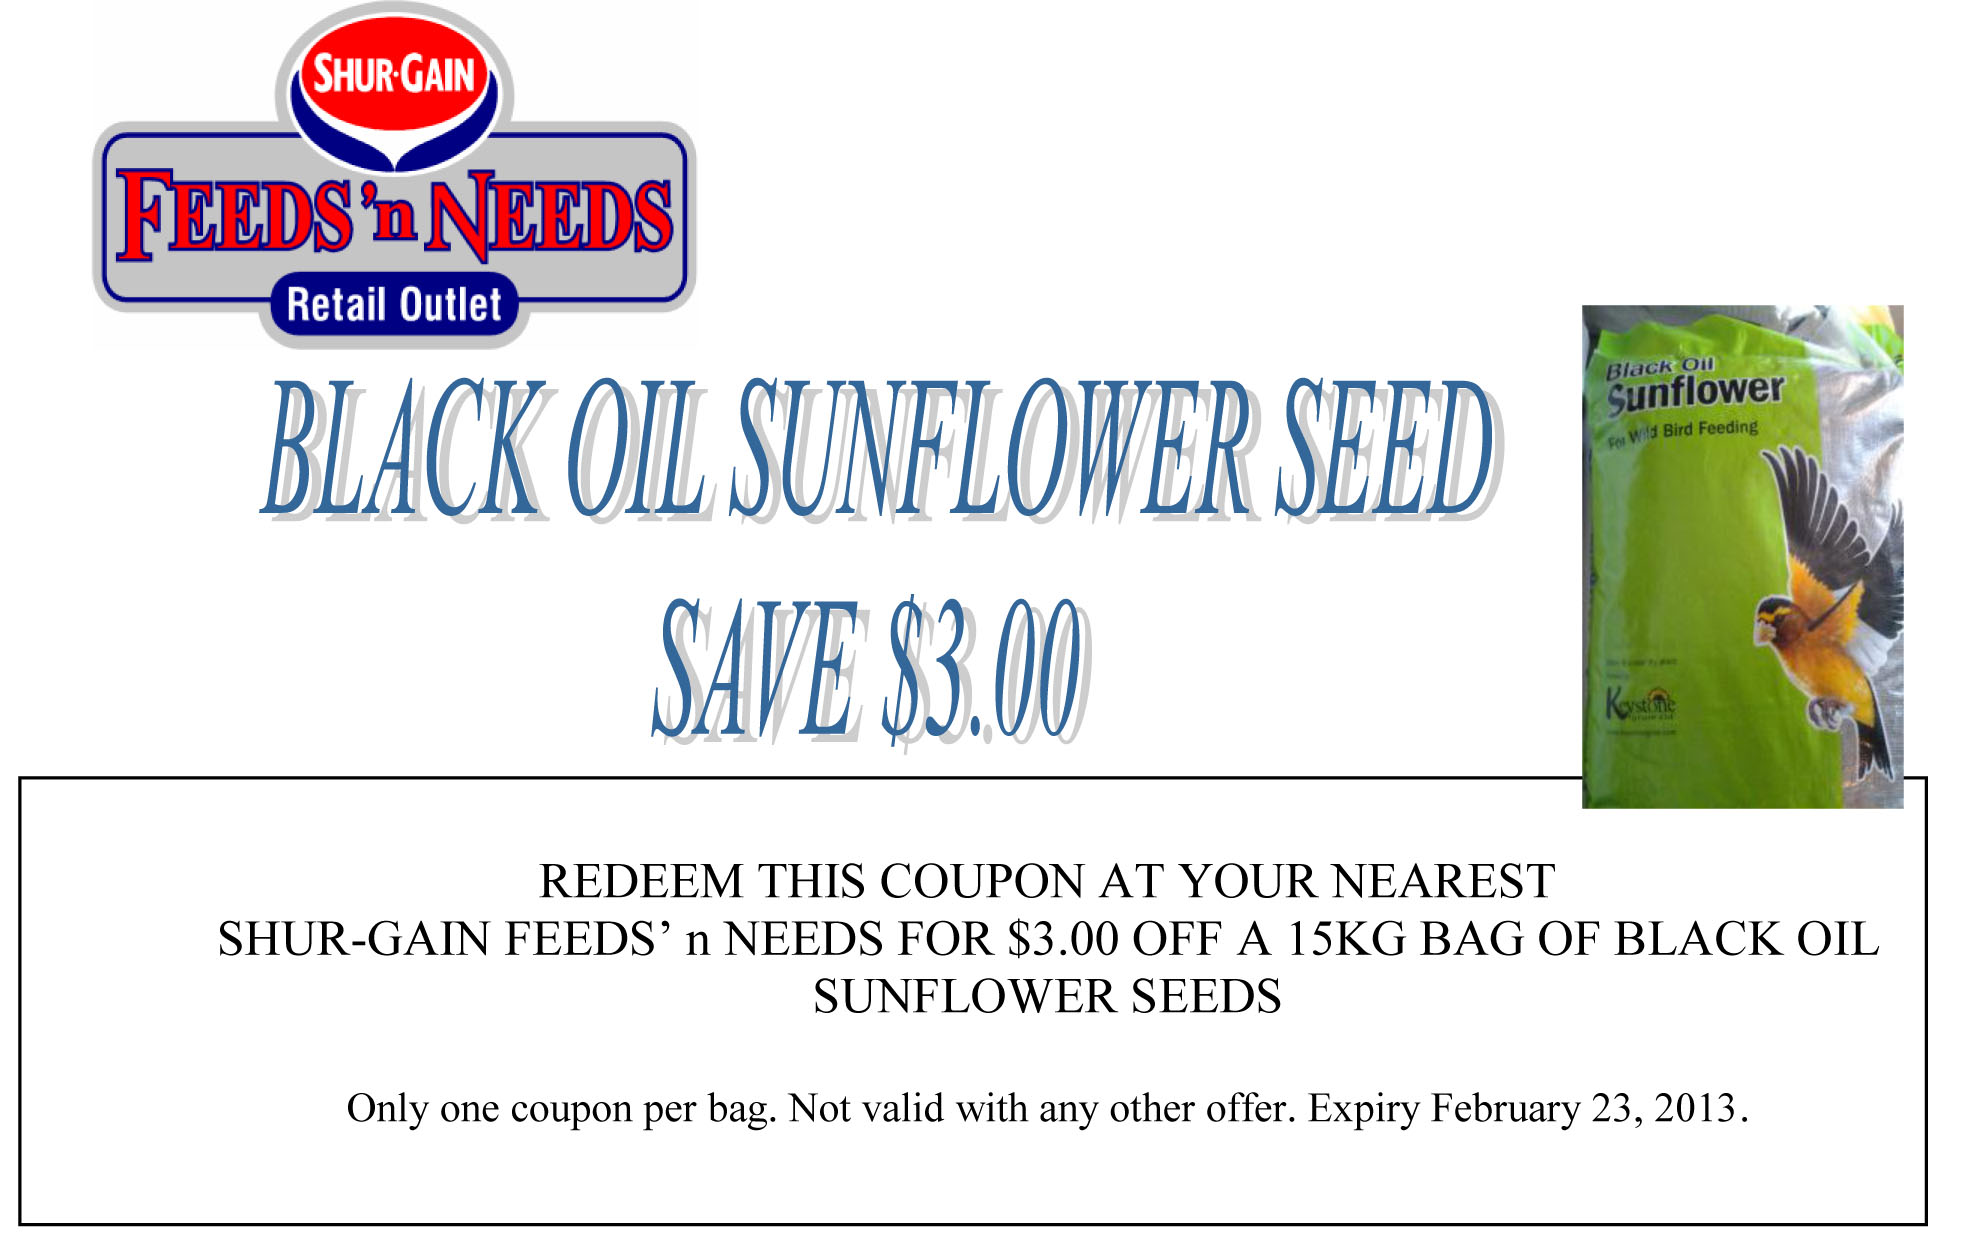 Hancock seed discount coupon